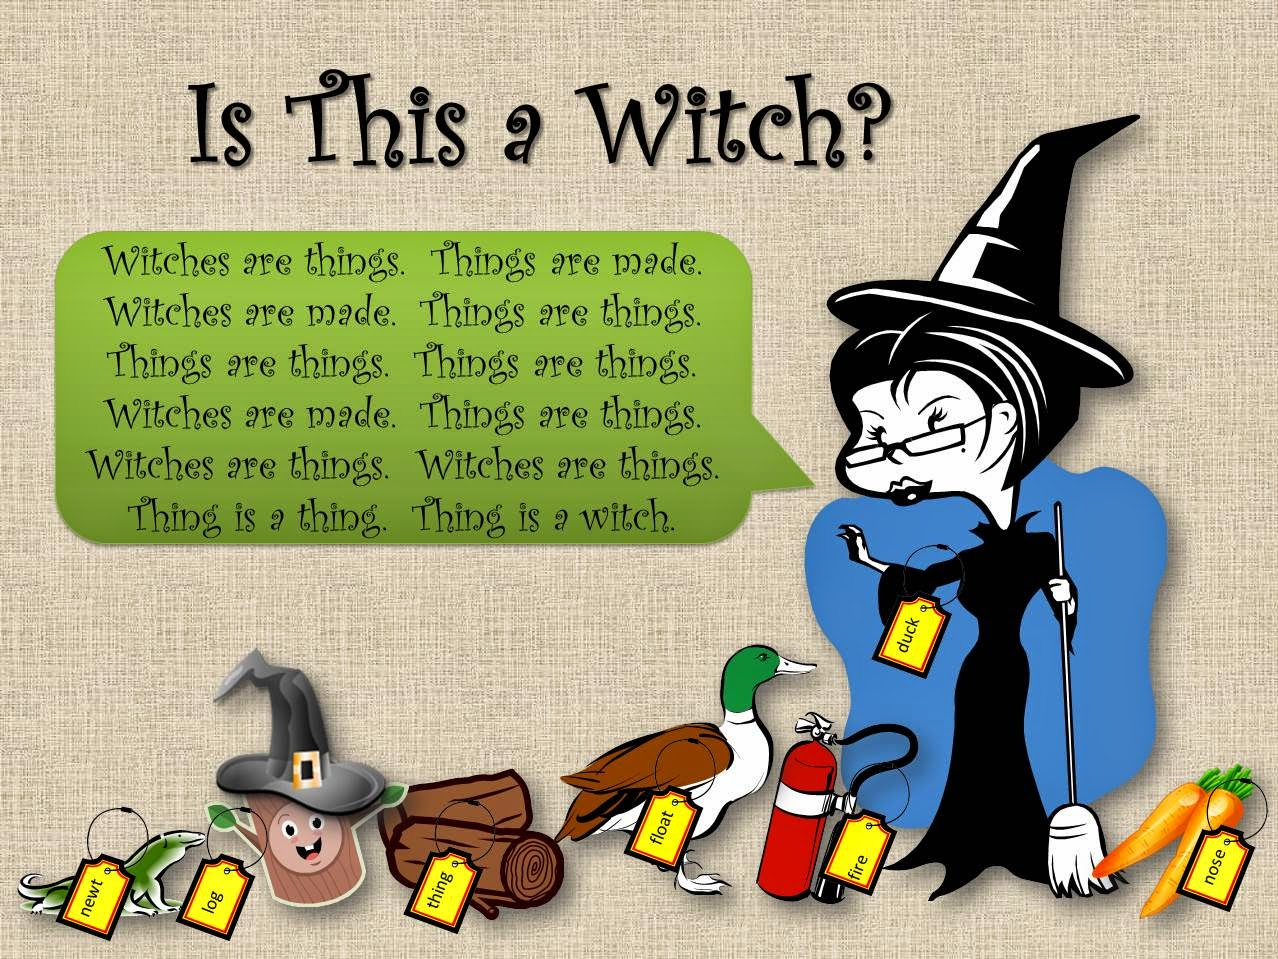 A newt, a log as a witch, a log, a duck, a witch, a carrot, and a fire extinguisher, all labeled, some incorrectly.